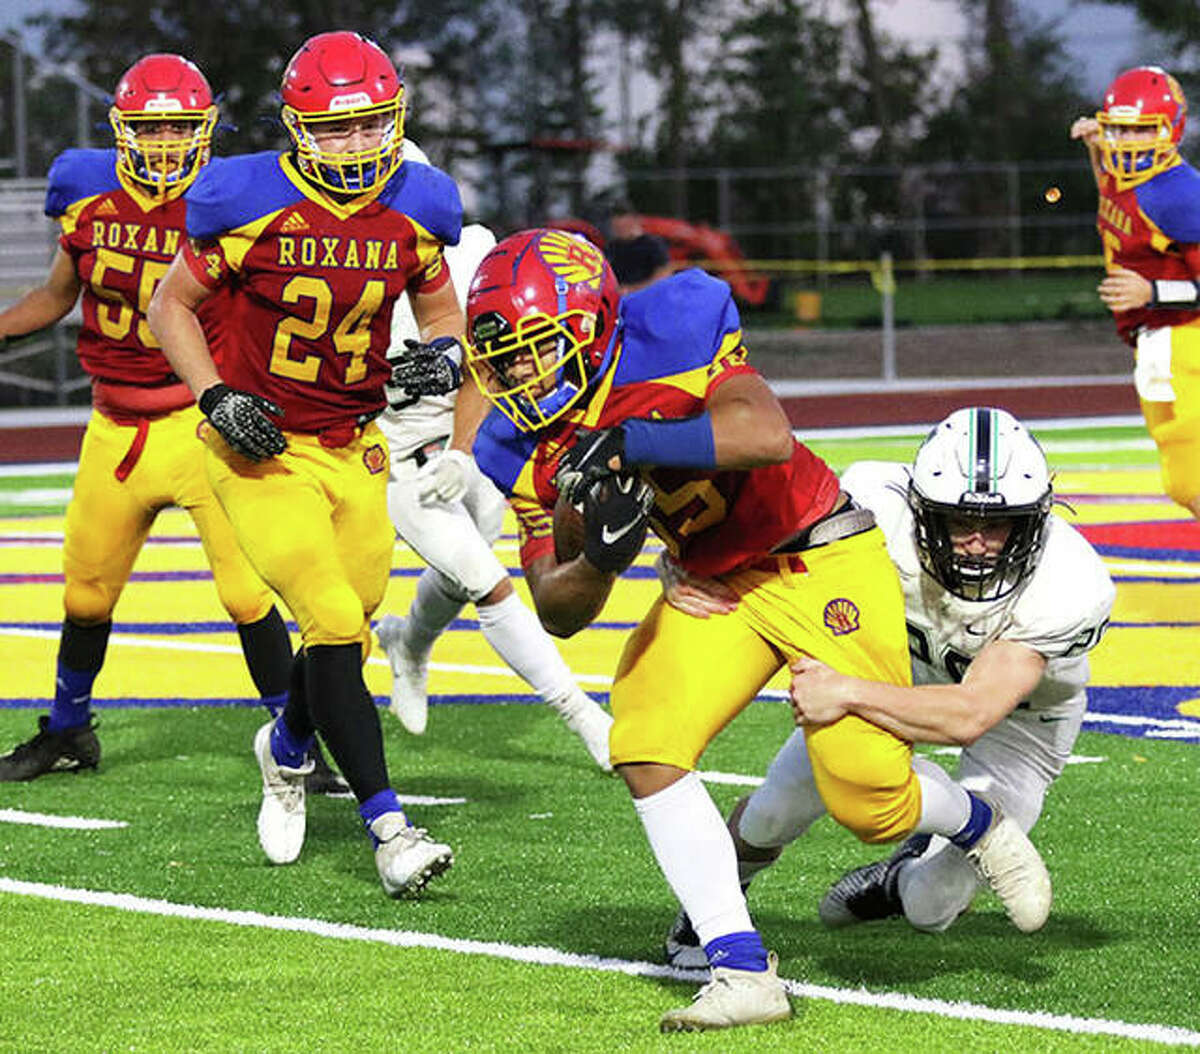 Roxana RB Terrel Graves tries to run through a tackle from a Eureka defender during a Week 1 game at Raich Field in Roxana. The Shells are back home Friday for a Cahokia Conference game vs. Breese Central.